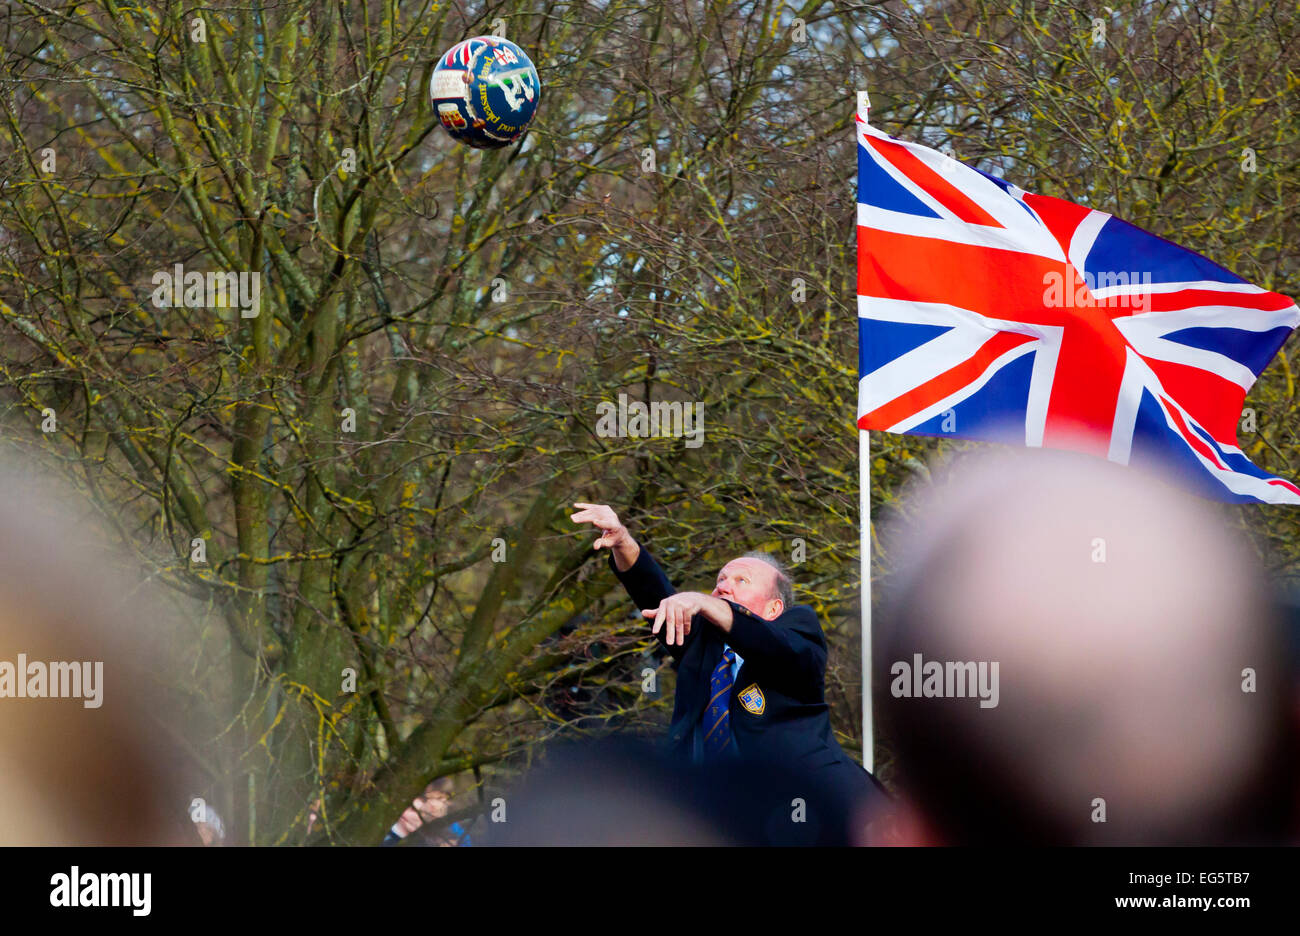 Ashbourne, Derbyshire, UK 17th February 2015 - The start of the annual Shrovetide Football Match in Ashbourne Derbyshire - Stock Image